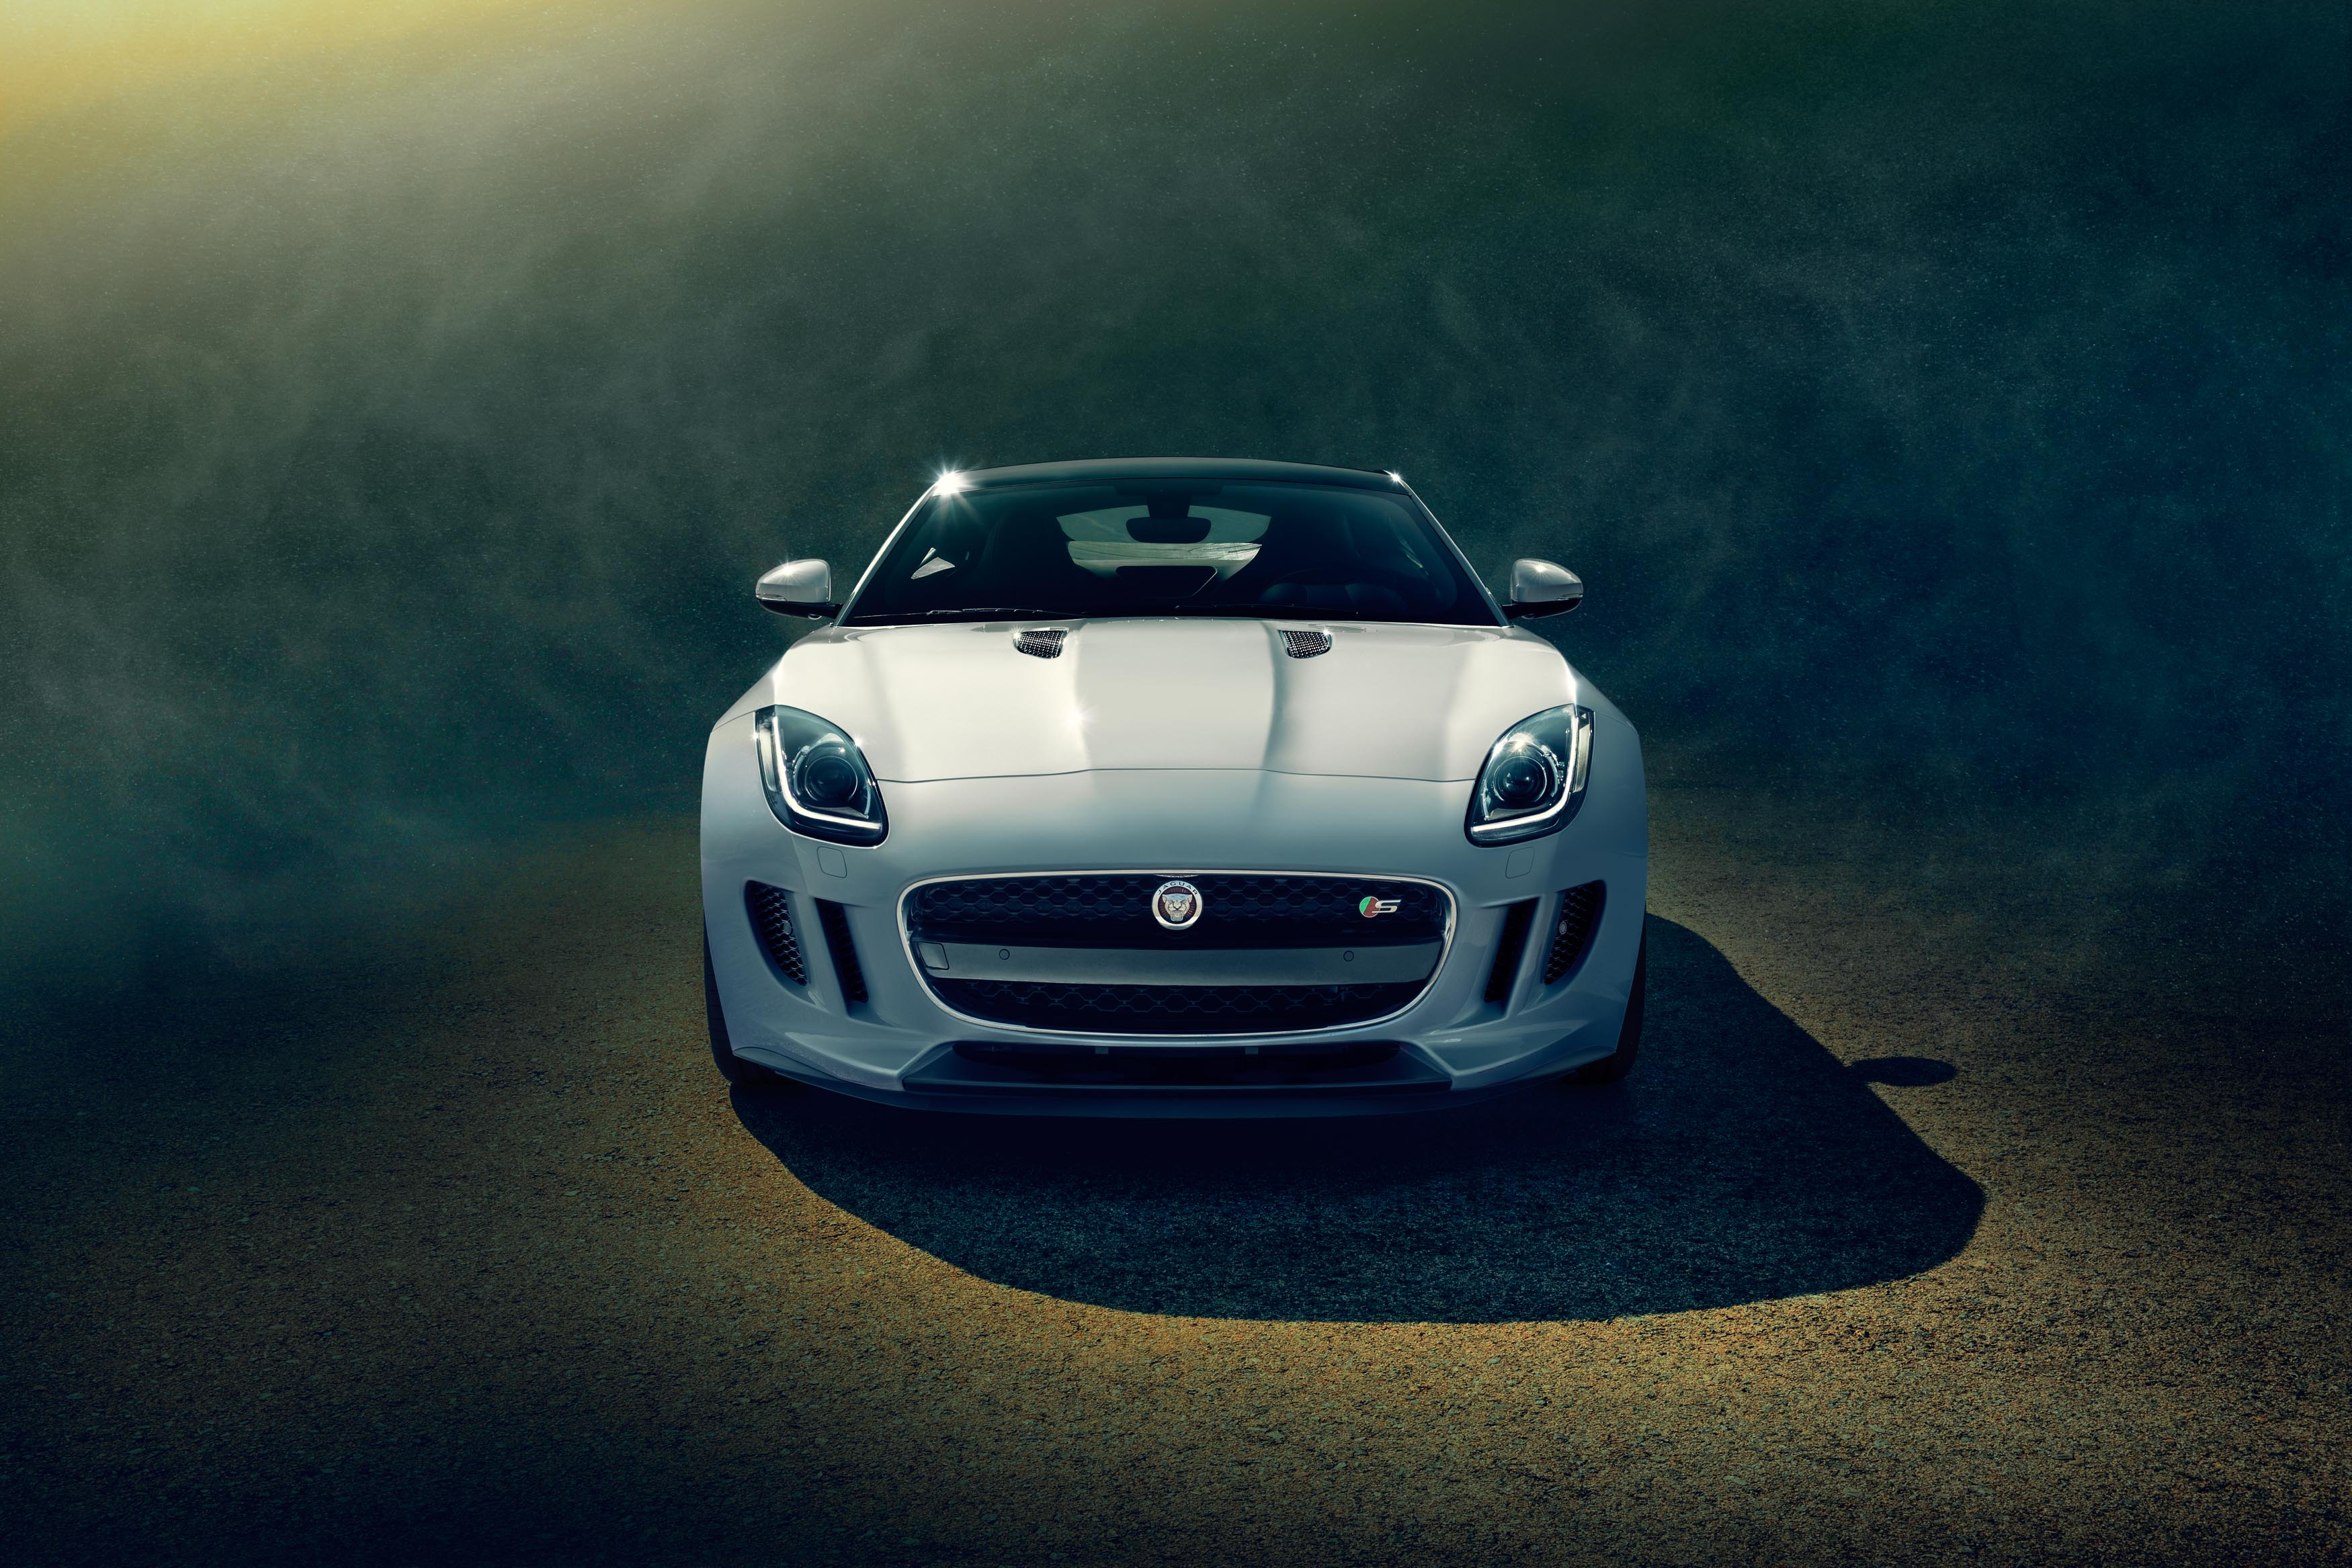 migs-foto-cgi-photographer-automotive-car-hong-kong-michael-lee-advtertising-commercial-photography-Jaguar-FType-Front-Layered_Alex_1